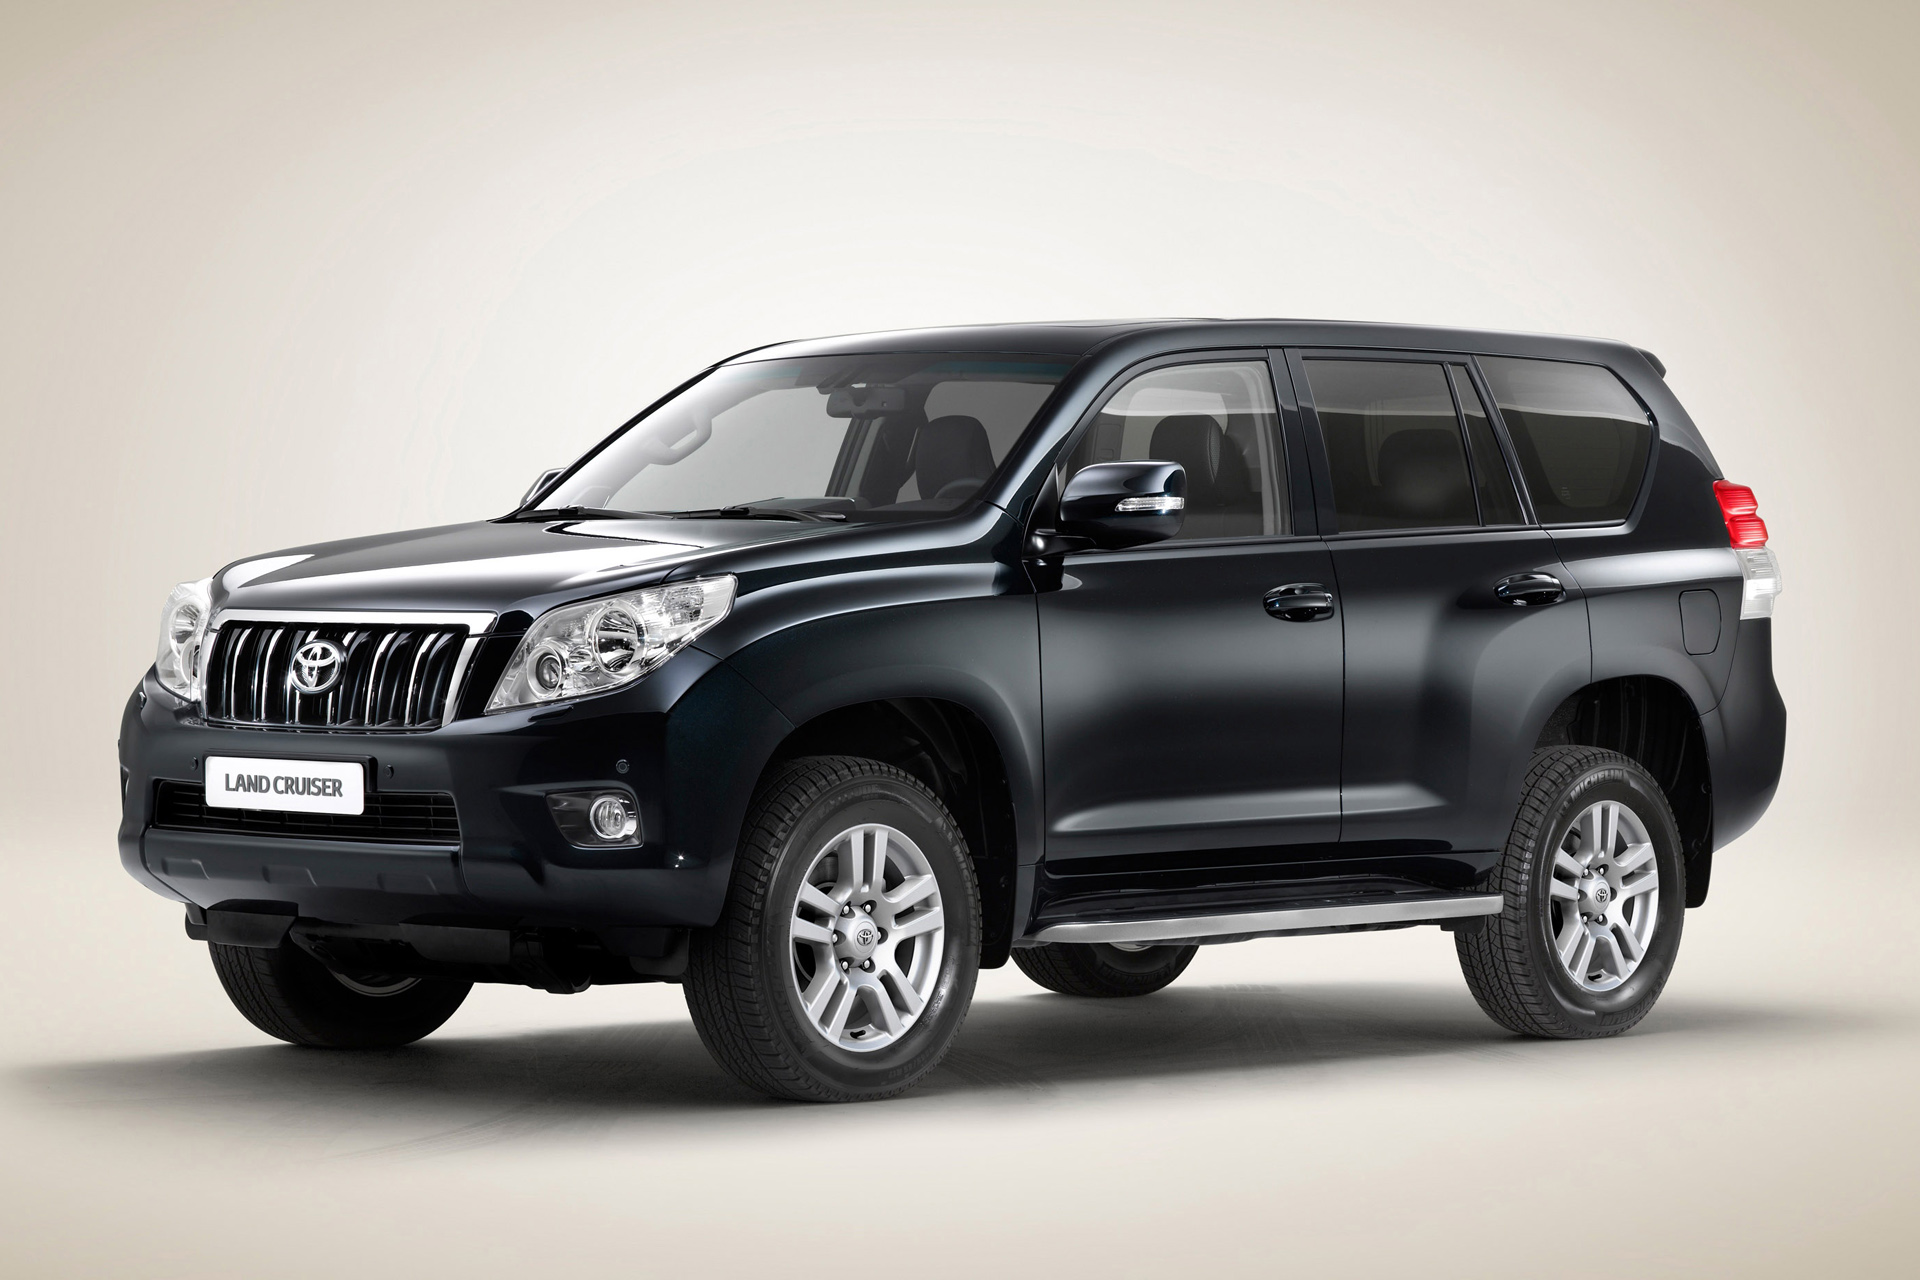 Toyota Land Cruiser Prado 150 Photos Photogallery With